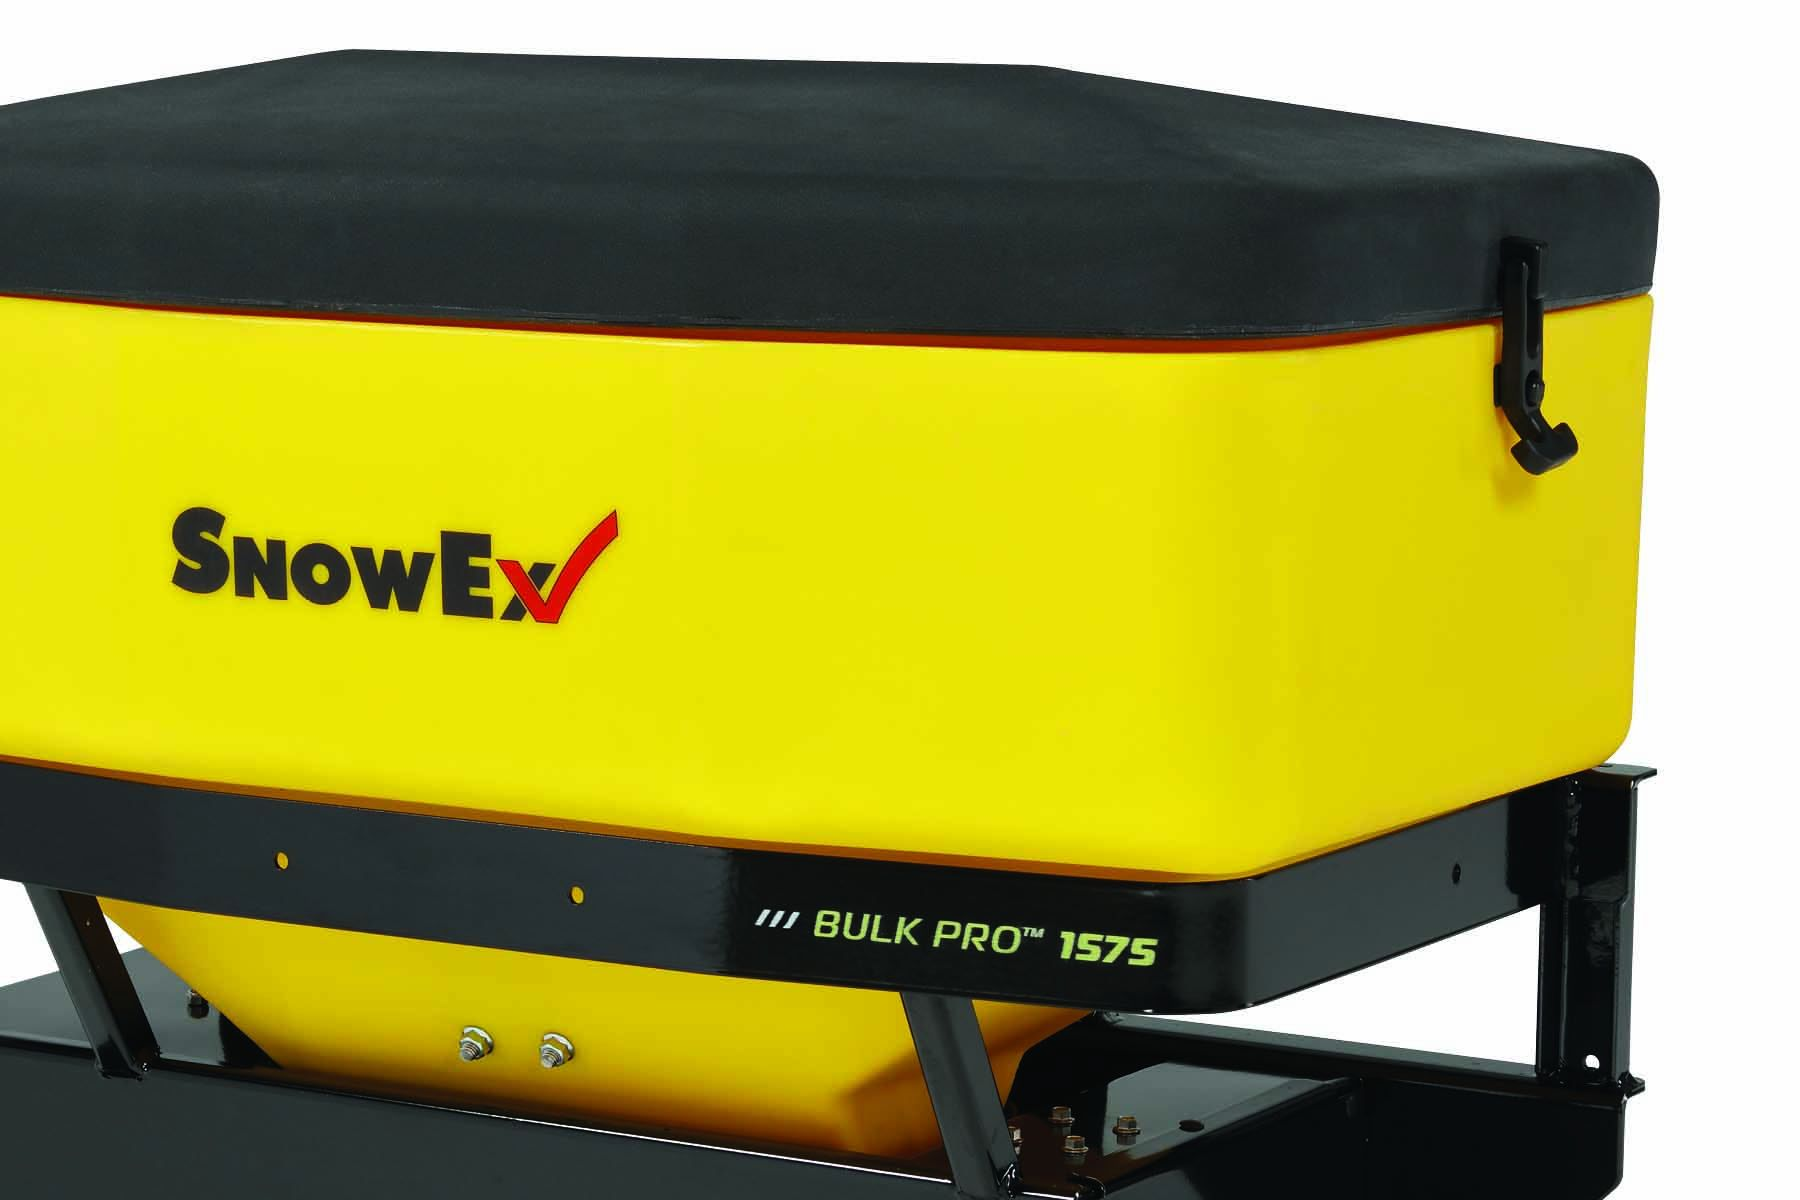 SnowEx Bulk-Pro 5.0 cu. ft. Tailgate Spreader SP-1575-1